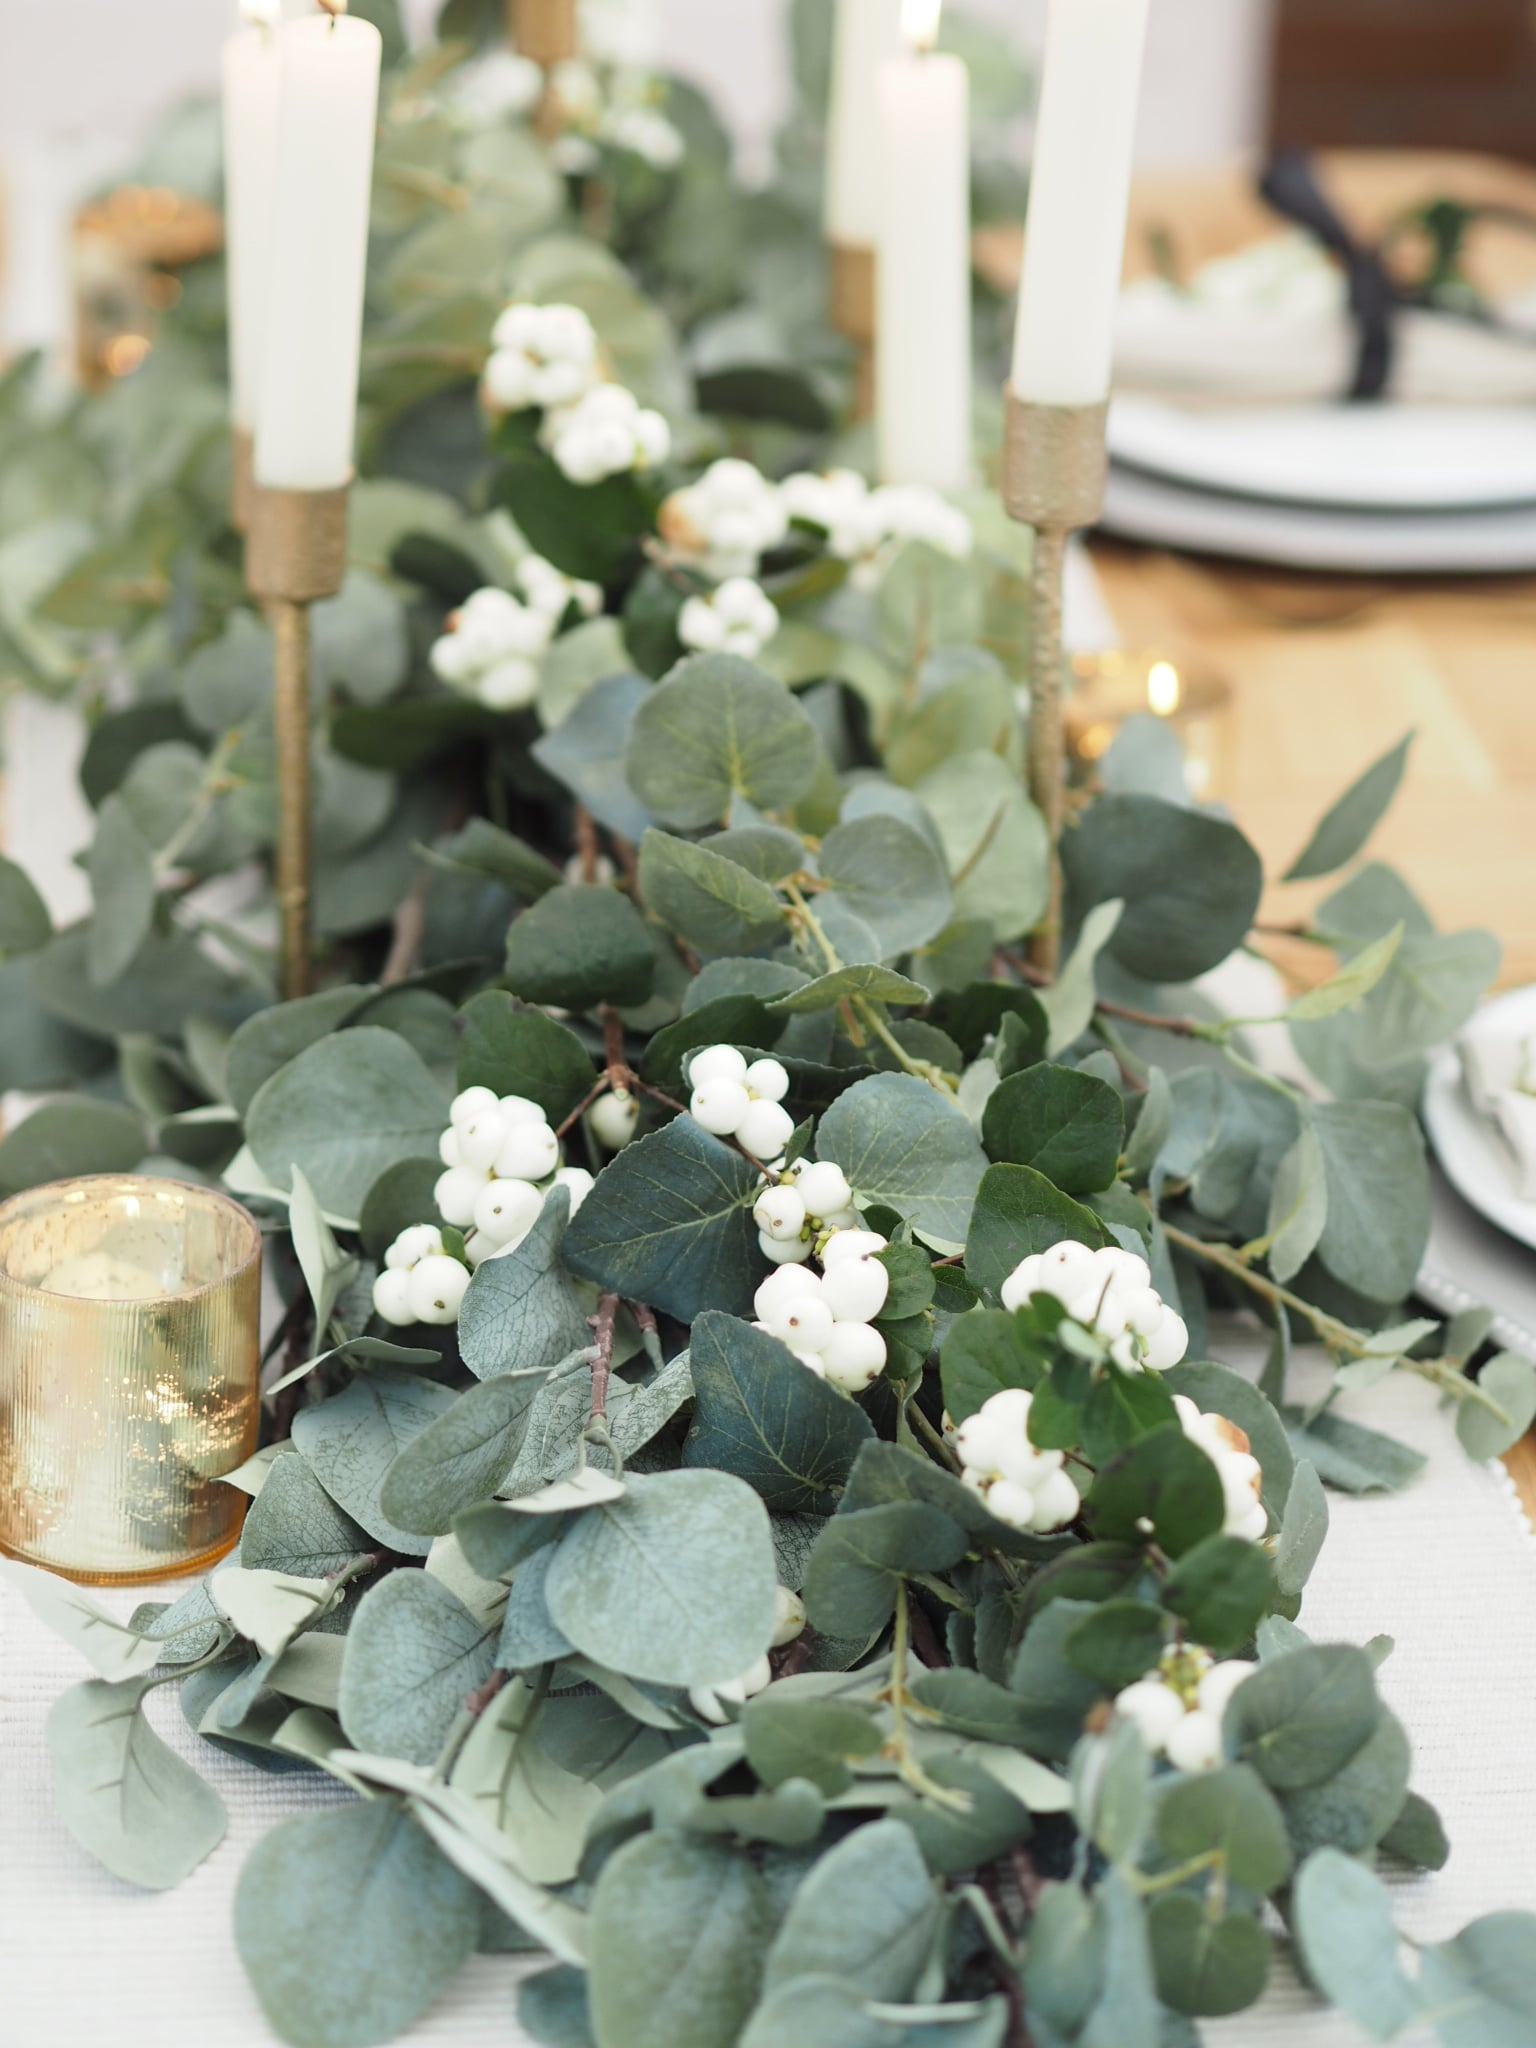 Christmas dining table decor, how to create a garland from faux eucalyptus stems to DIY a budget show-stopping display at home for your Christmas meal